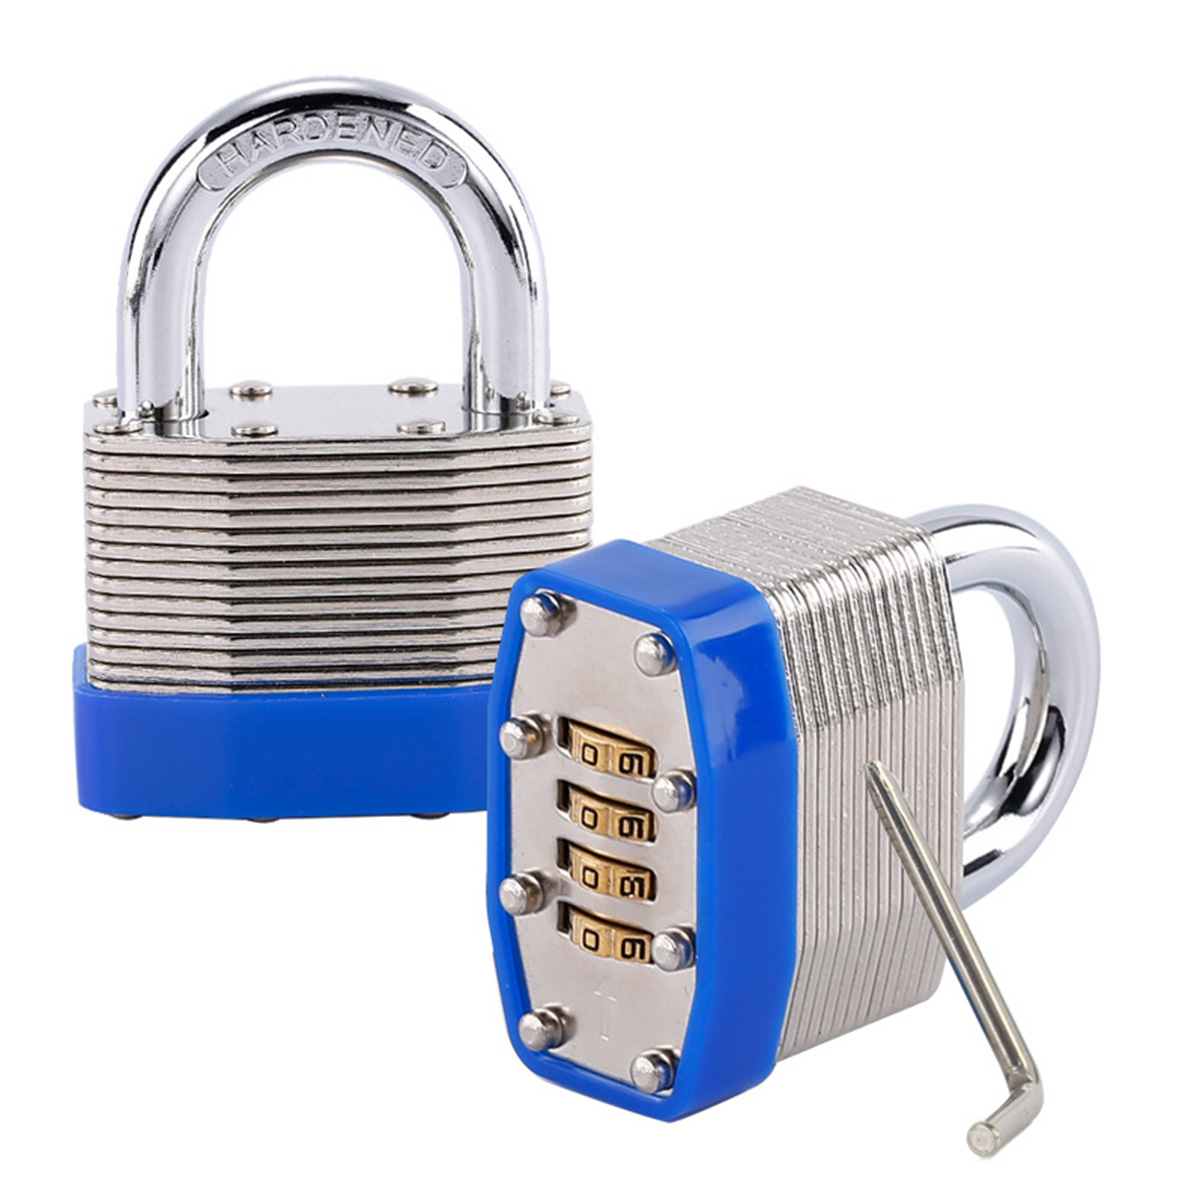 Password Padlock 4 Digit Laminated Steel Body Mot